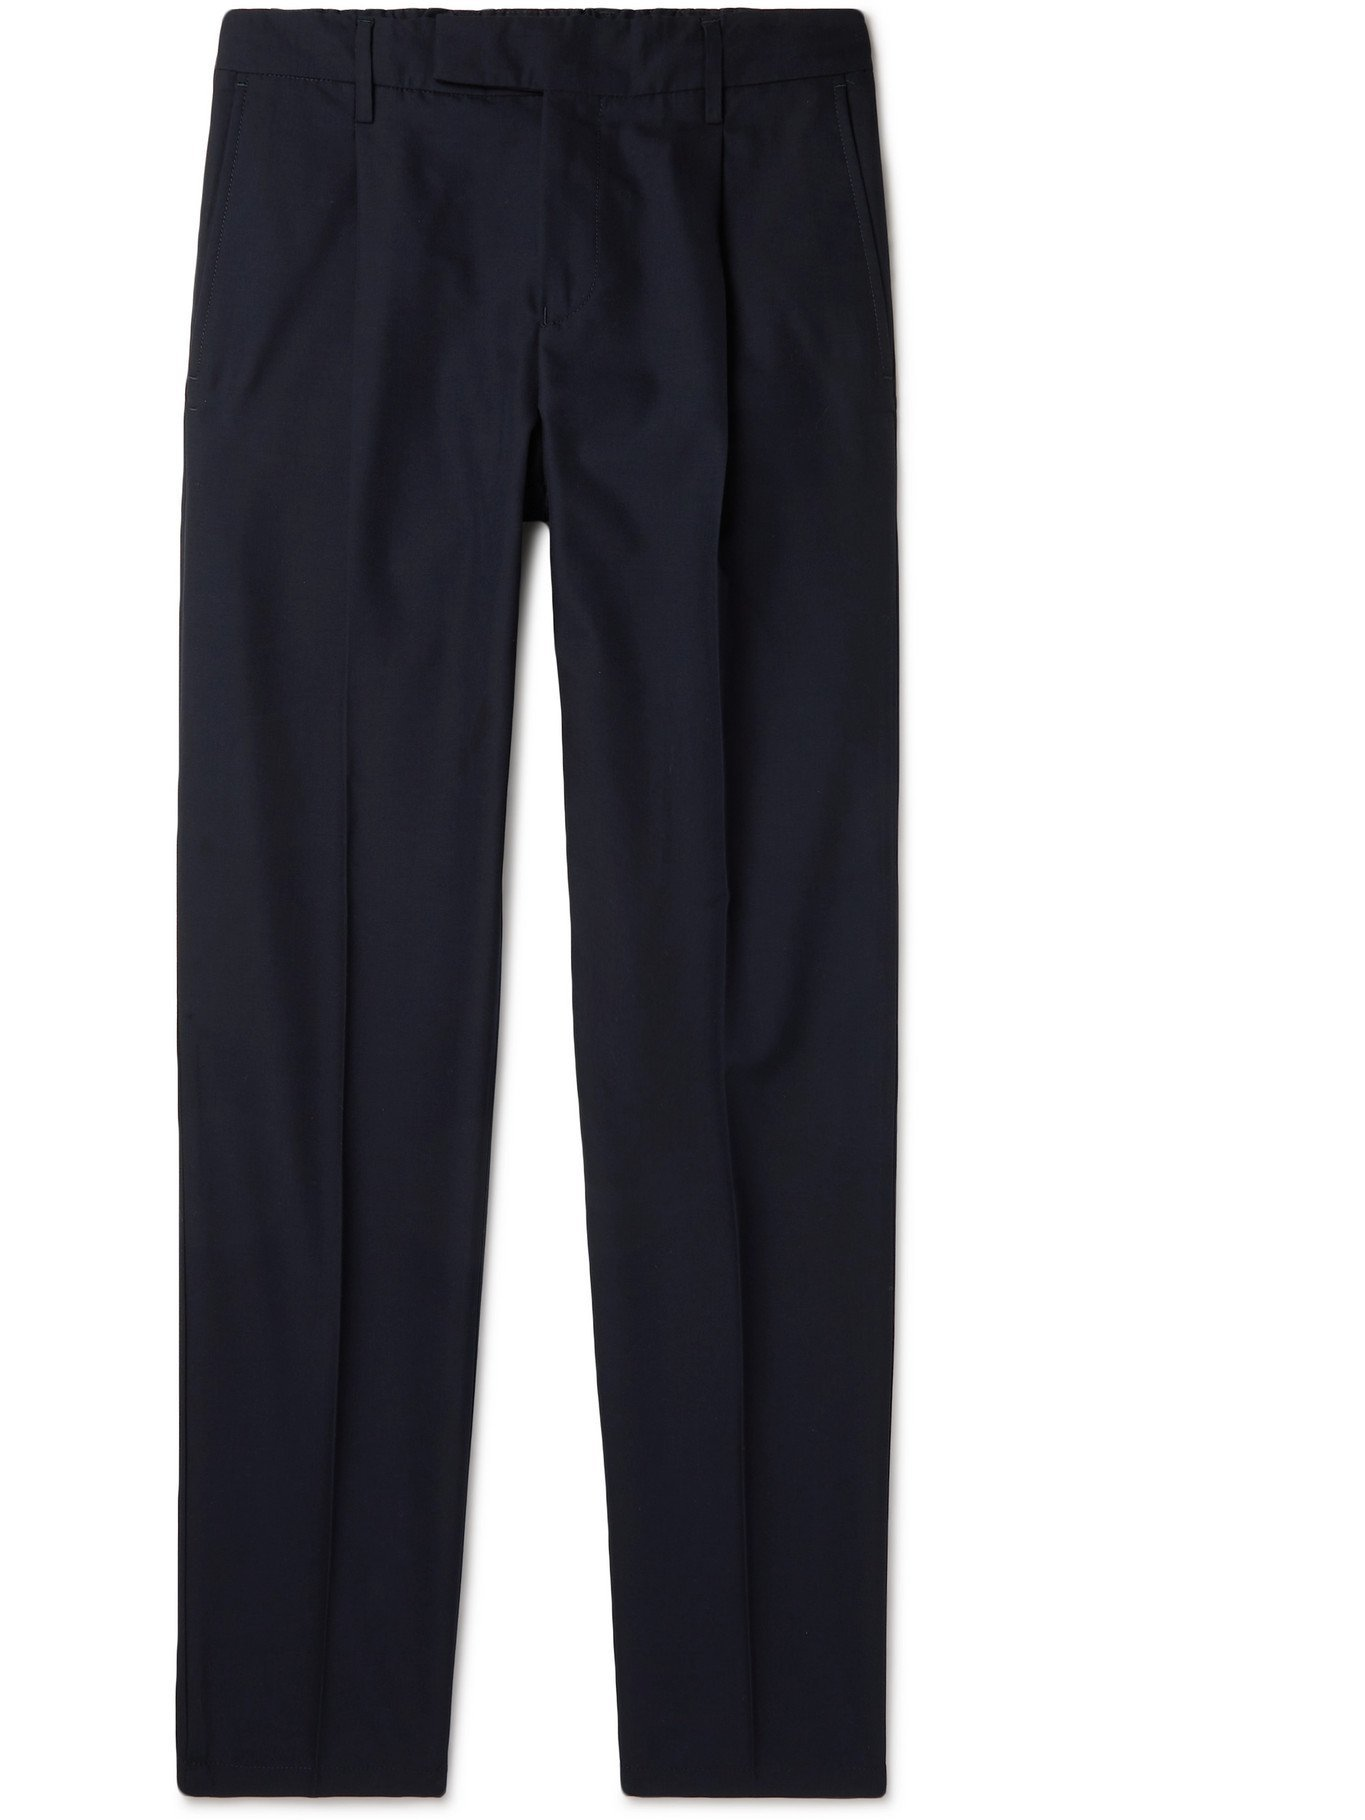 DUNHILL - Slim-Fit Wool and Cotton-Blend Trousers - Blue